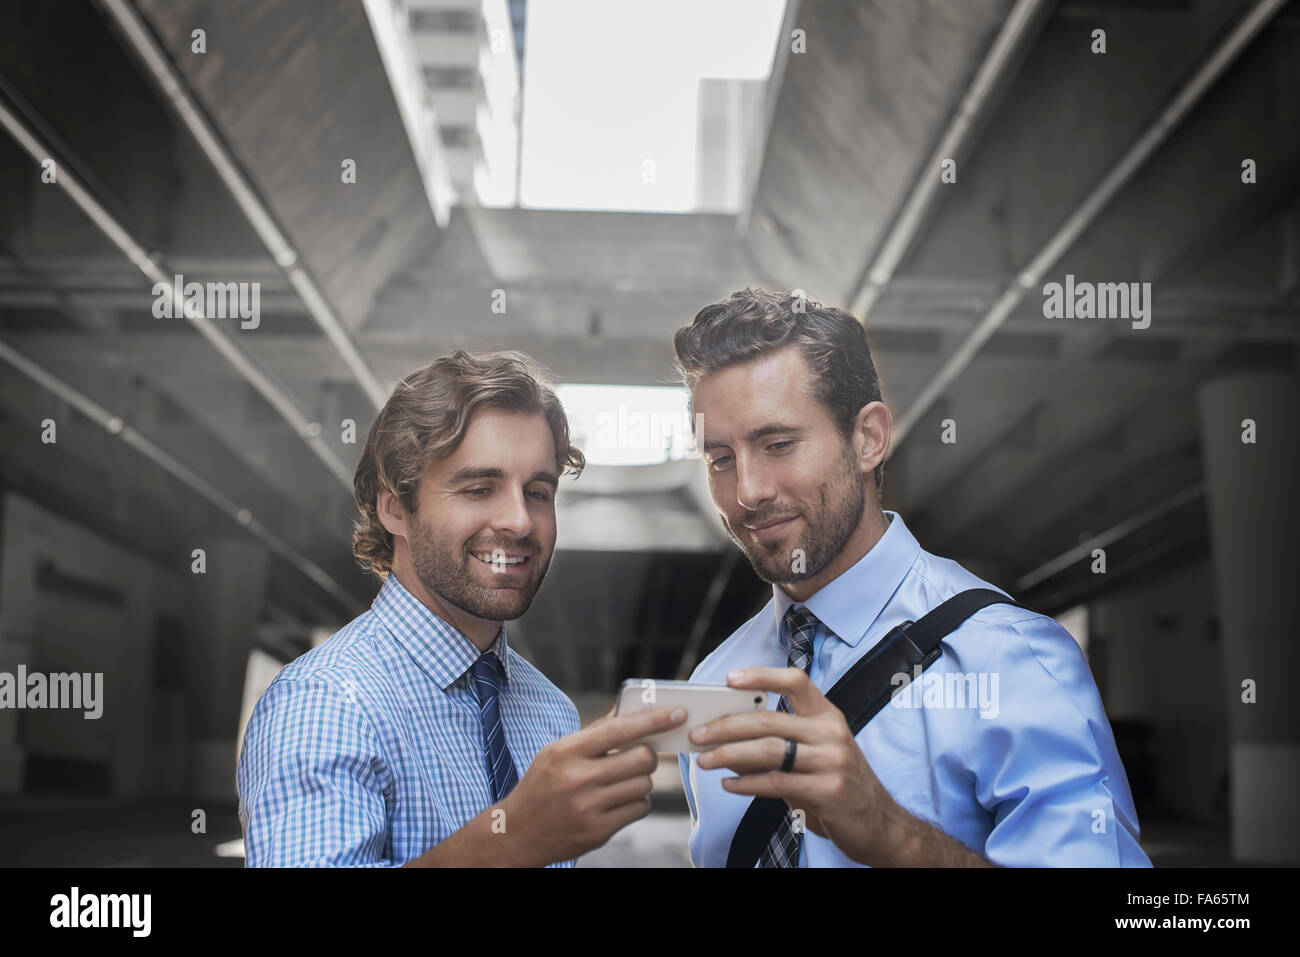 Two men in shirts and ties taking a selfie with a smart phone, with an urban walkway and tall buildings in the background. - Stock Image